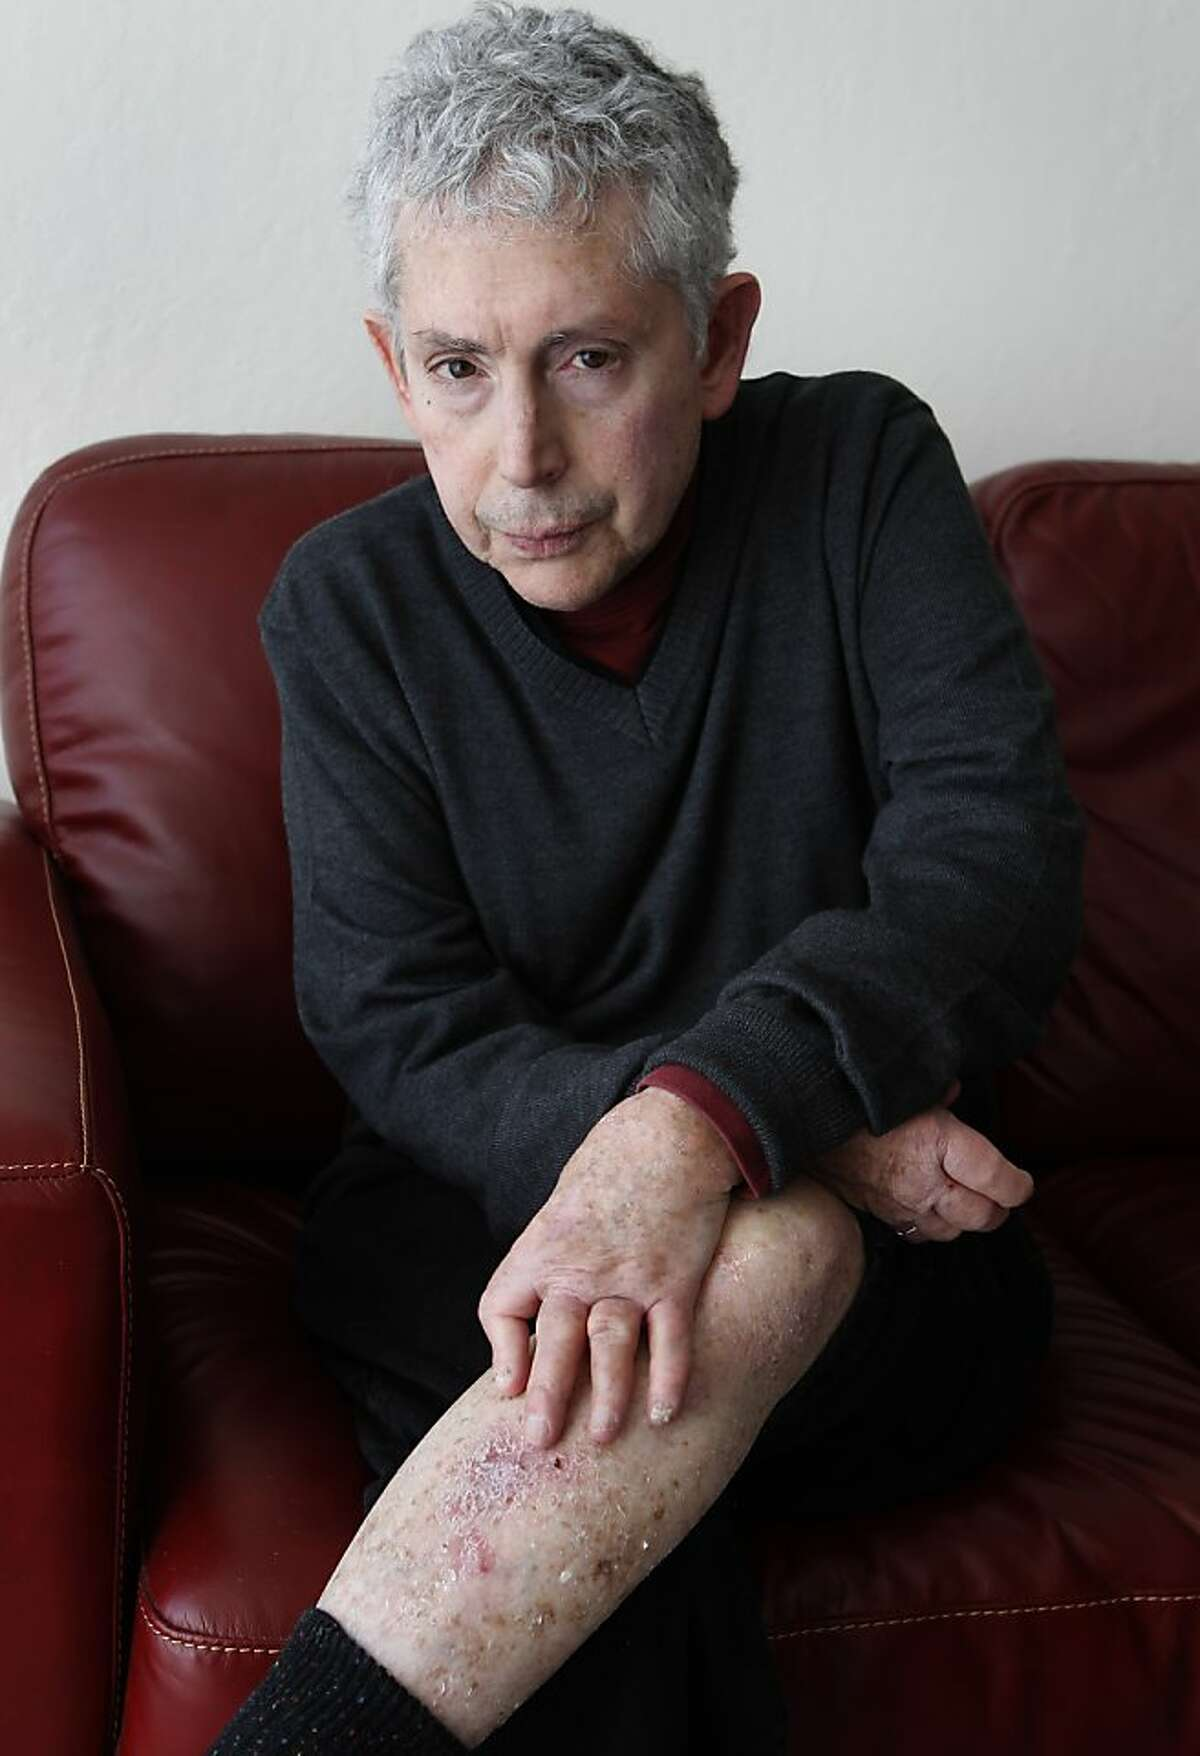 Fred Finkelstein is seen at his home in Oakland, Calif. on Thursday, Jan. 10, 2013. Finkelstein, 66, was diagnosed with psoriatic arthritis about 35 years ago, which has deformed his hands and caused widespread skin irritation.